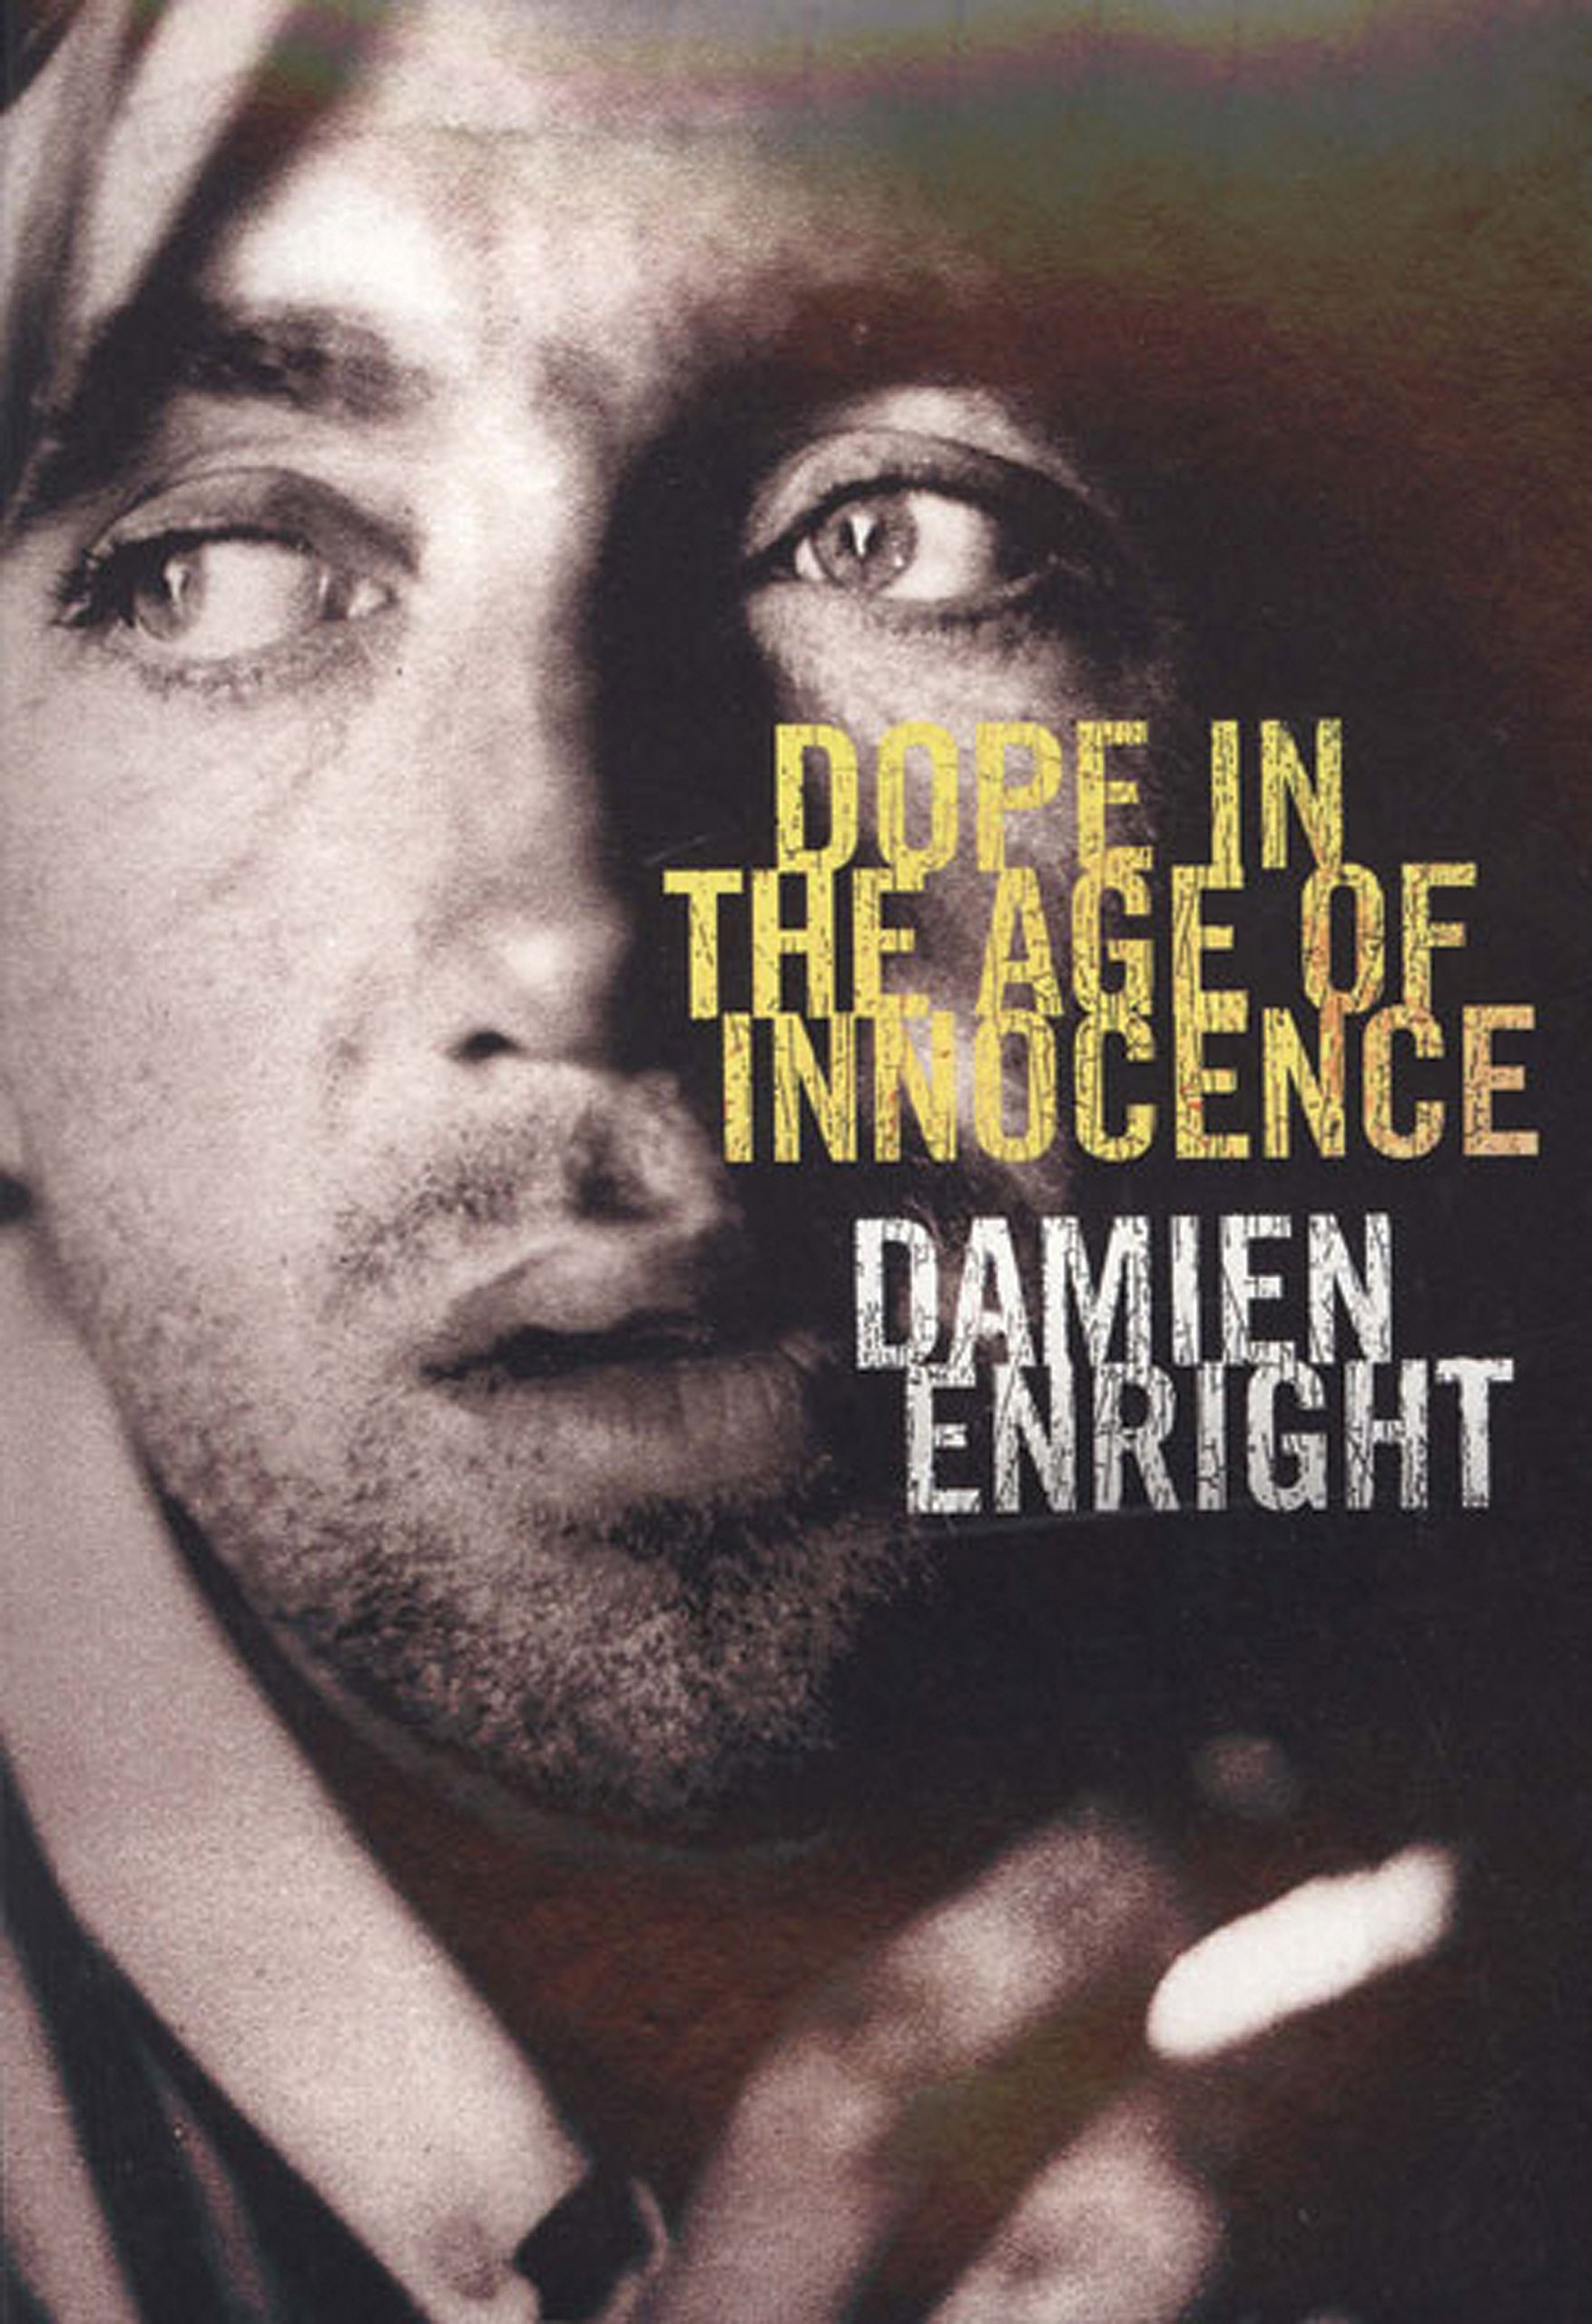 Damien Enright, Interview, Test Pressing, Phil Mison, Dope in the Age of Innocence